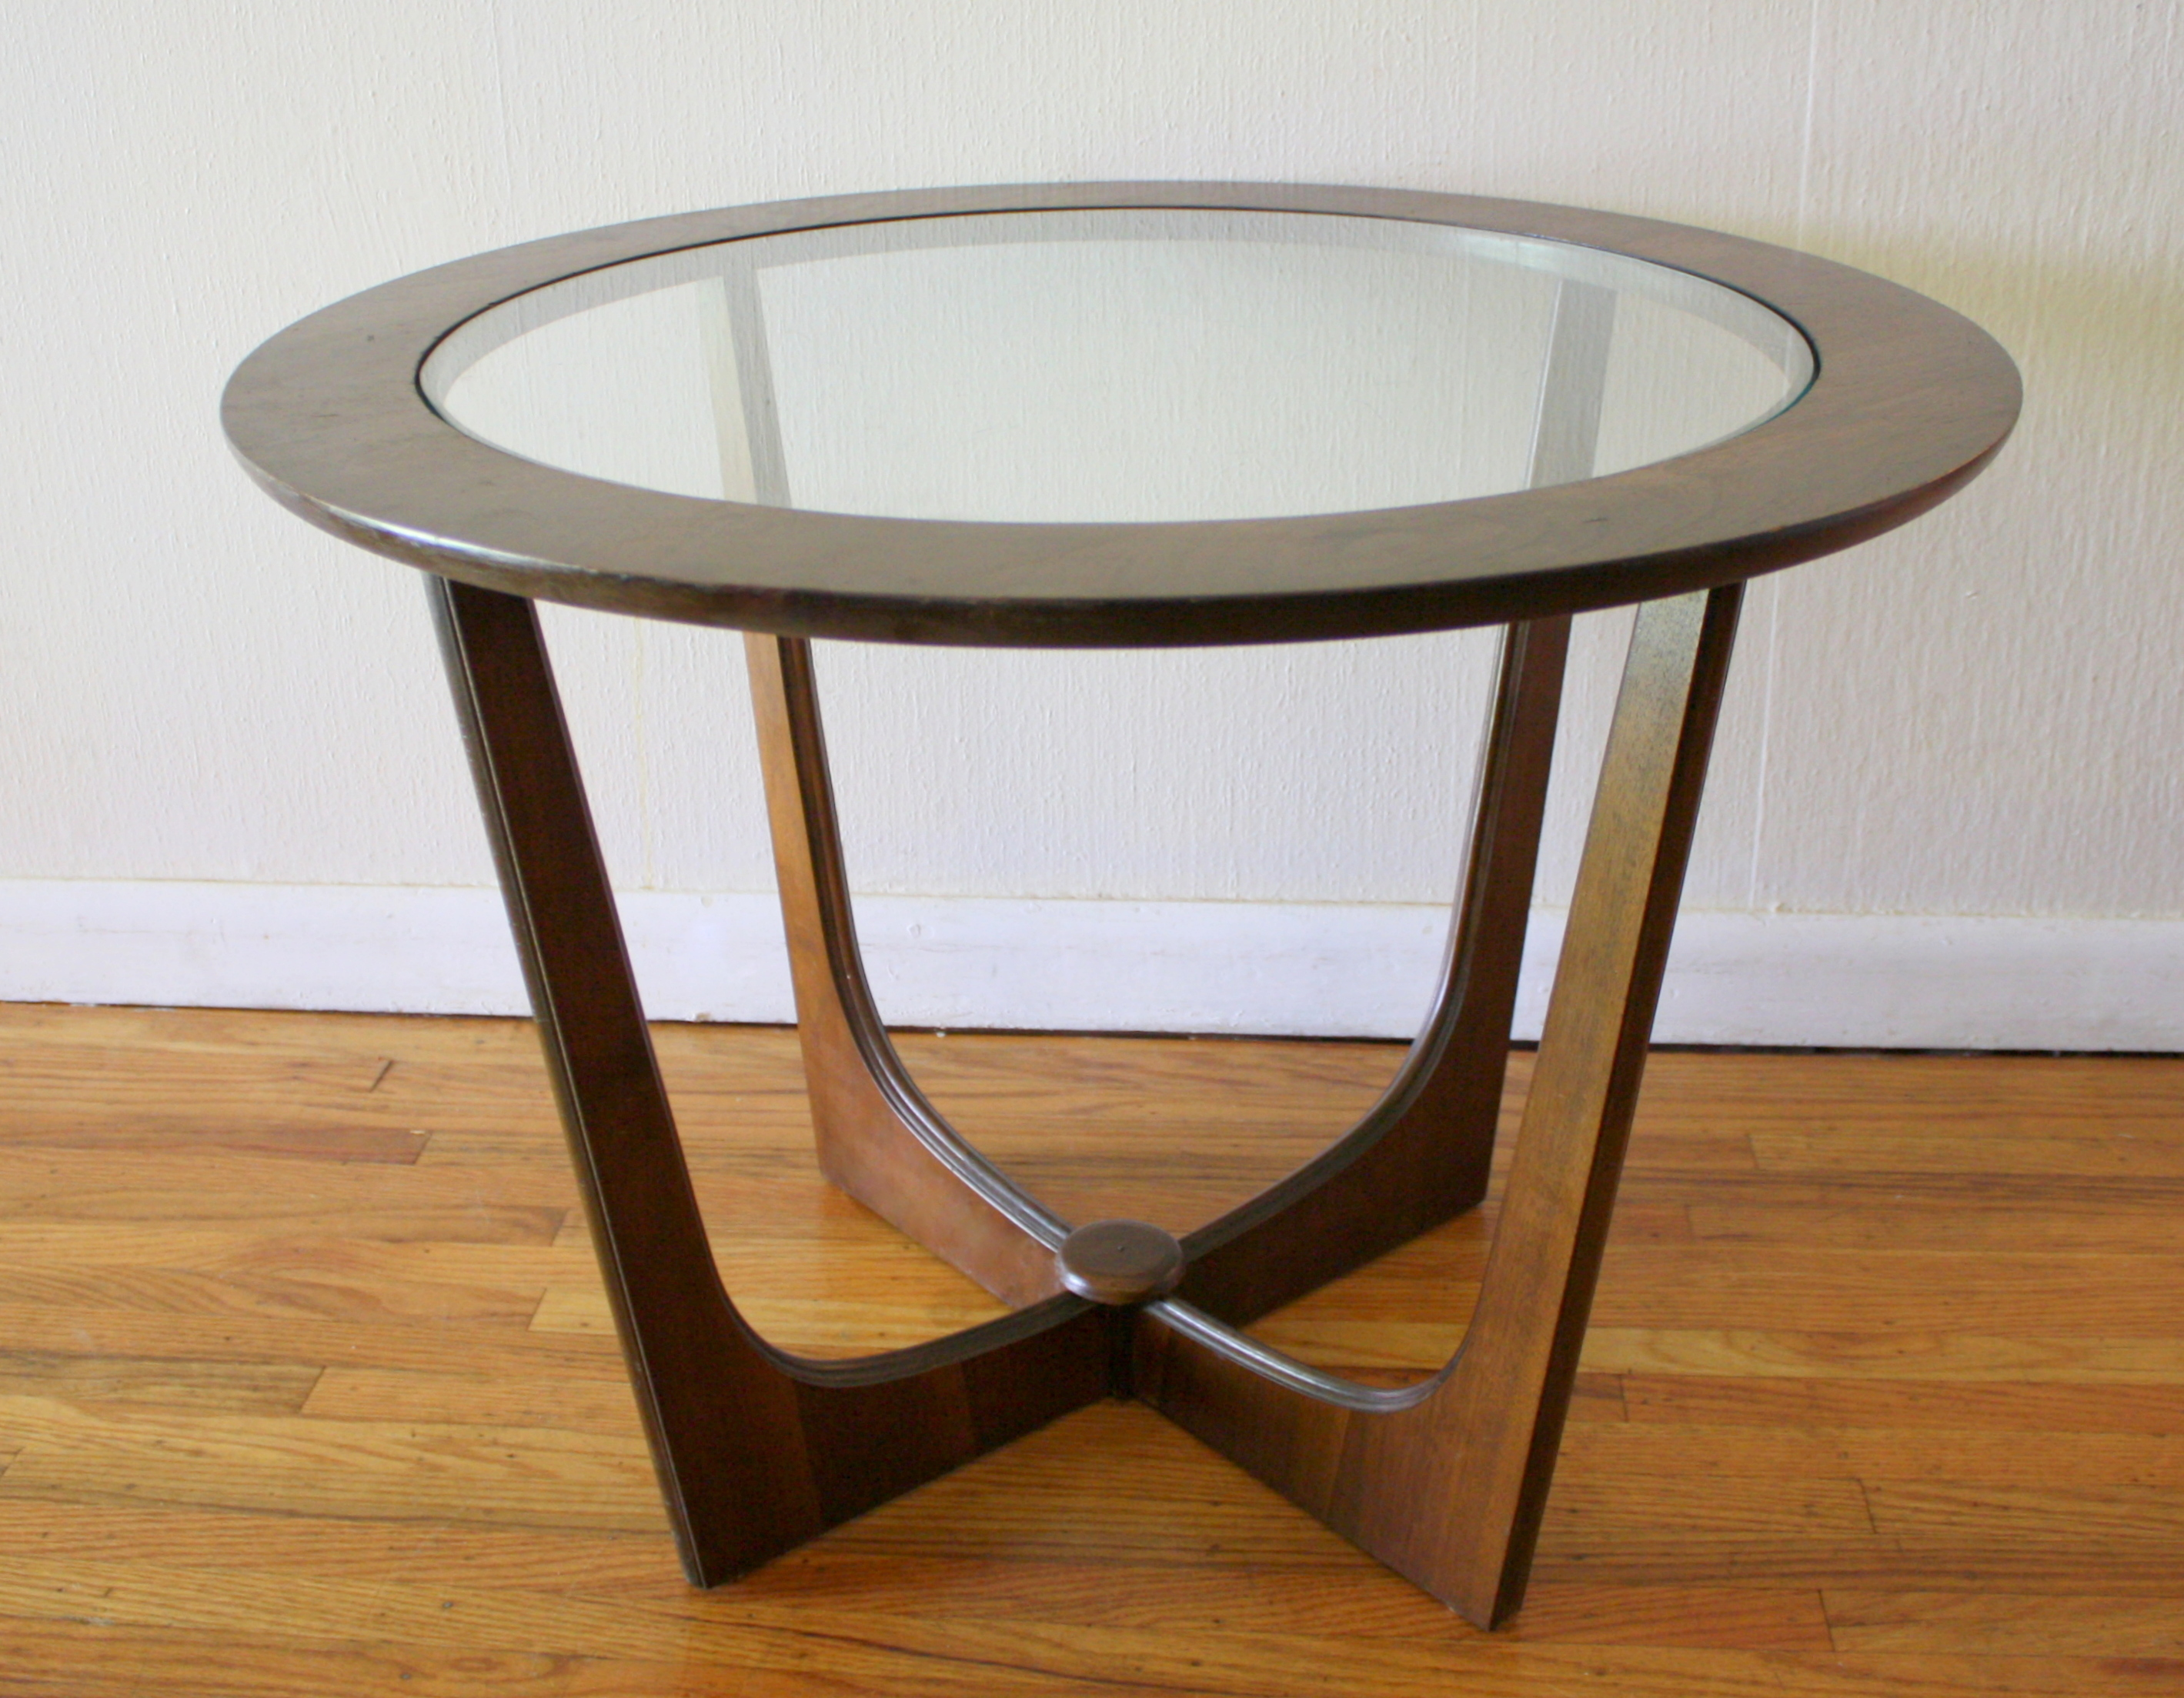 Round Glass Bedside Table Elegant Round Glass Top Coffee Table Cf 72 Details Bic